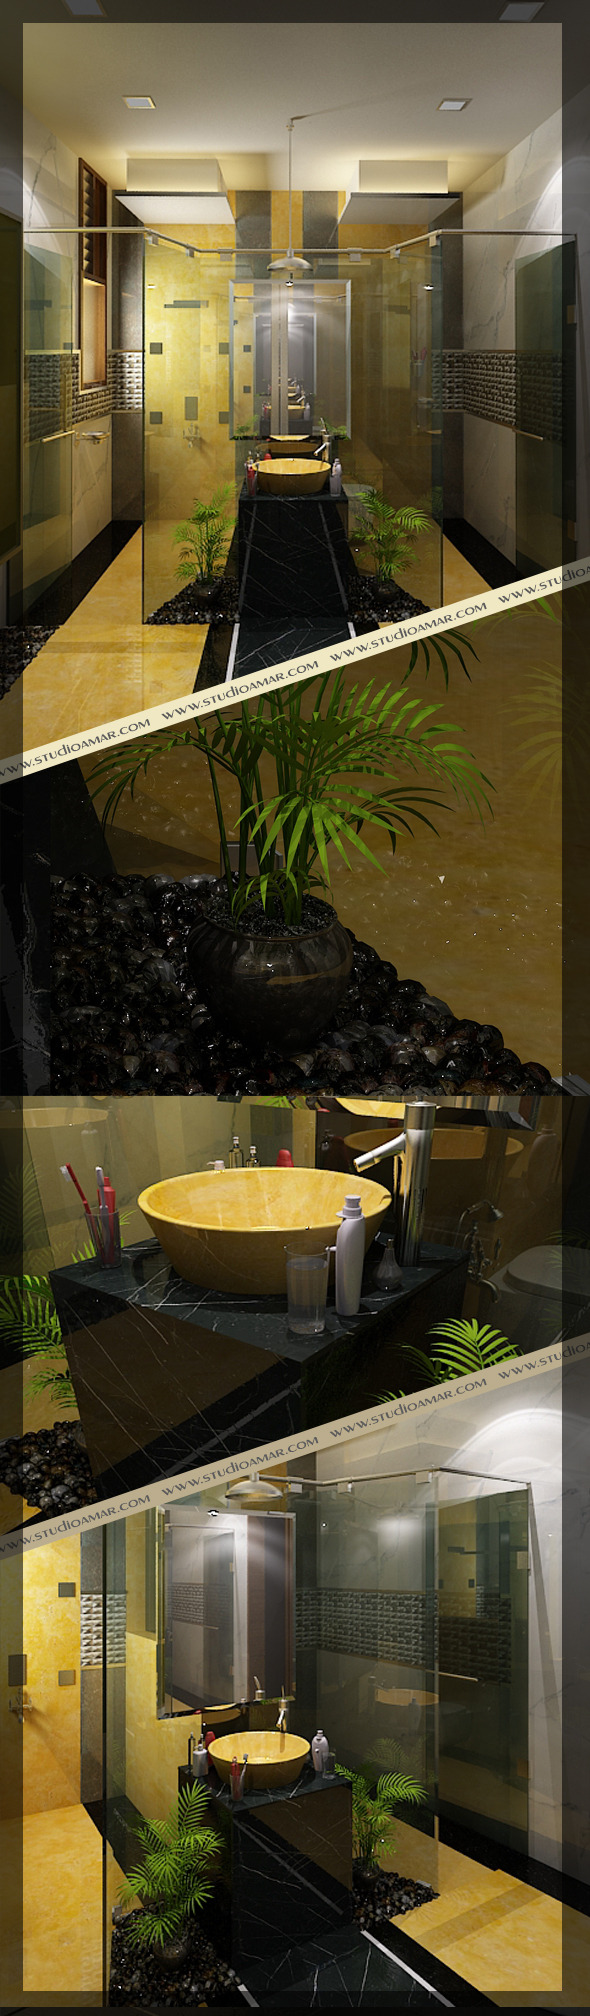 Realistic Bathroom 118 - 3DOcean Item for Sale